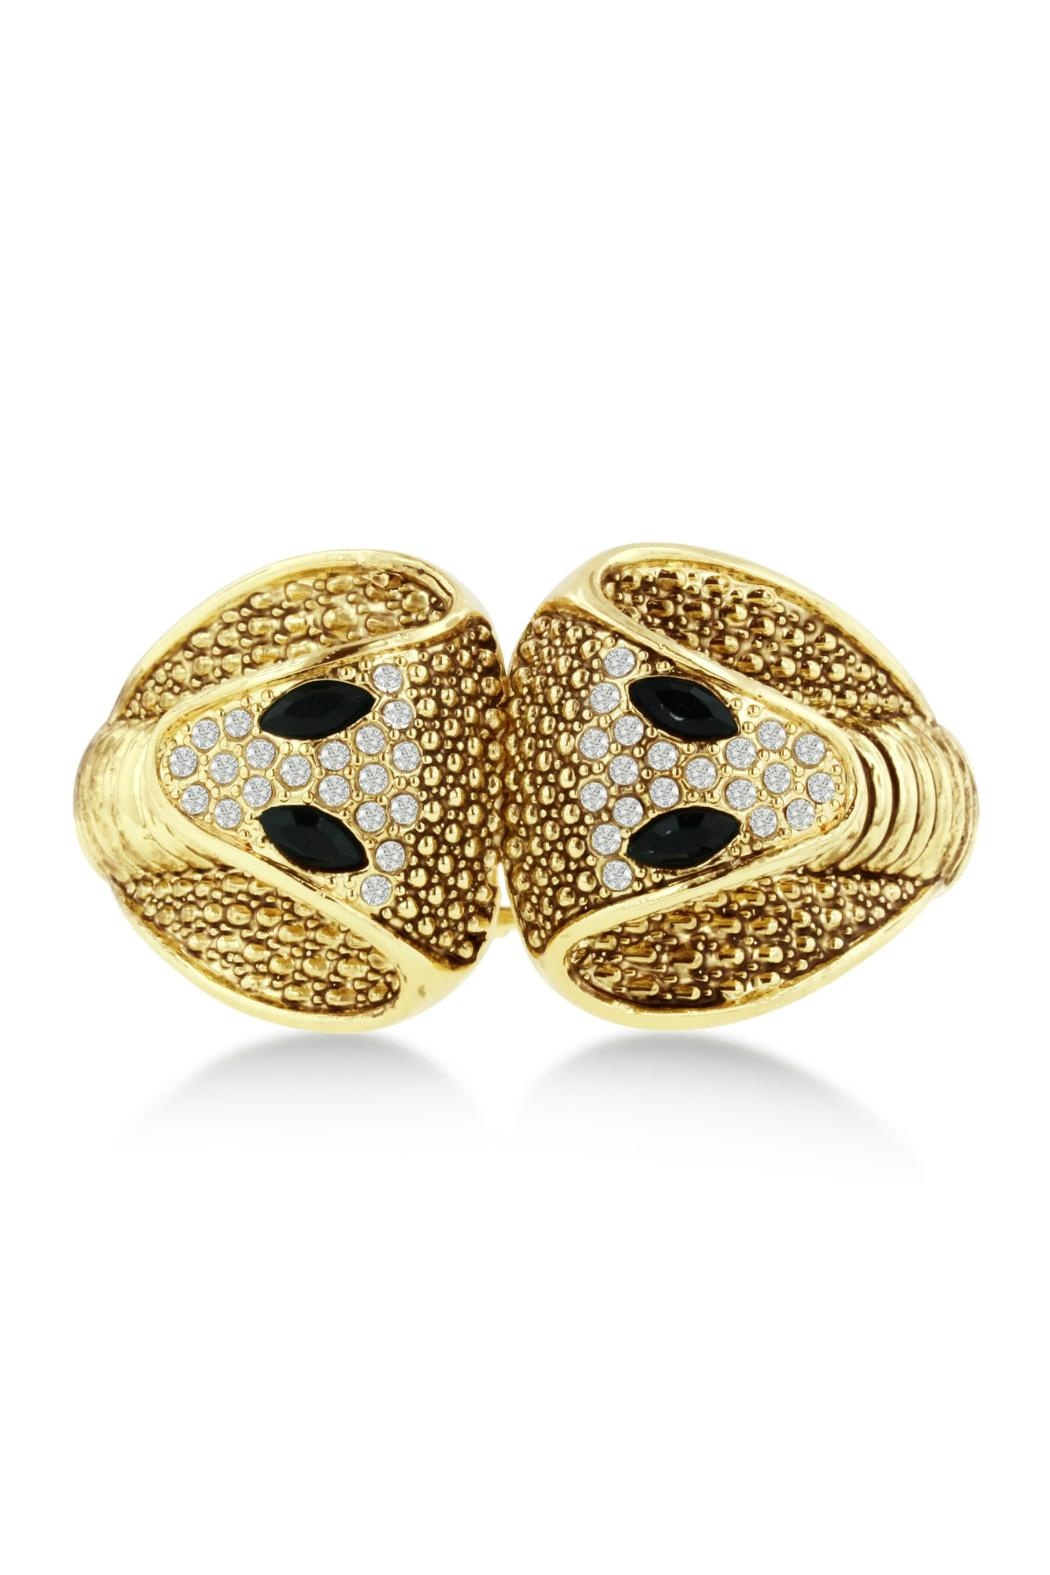 6th Borough Boutique Gold Snake Cuff - Main Image